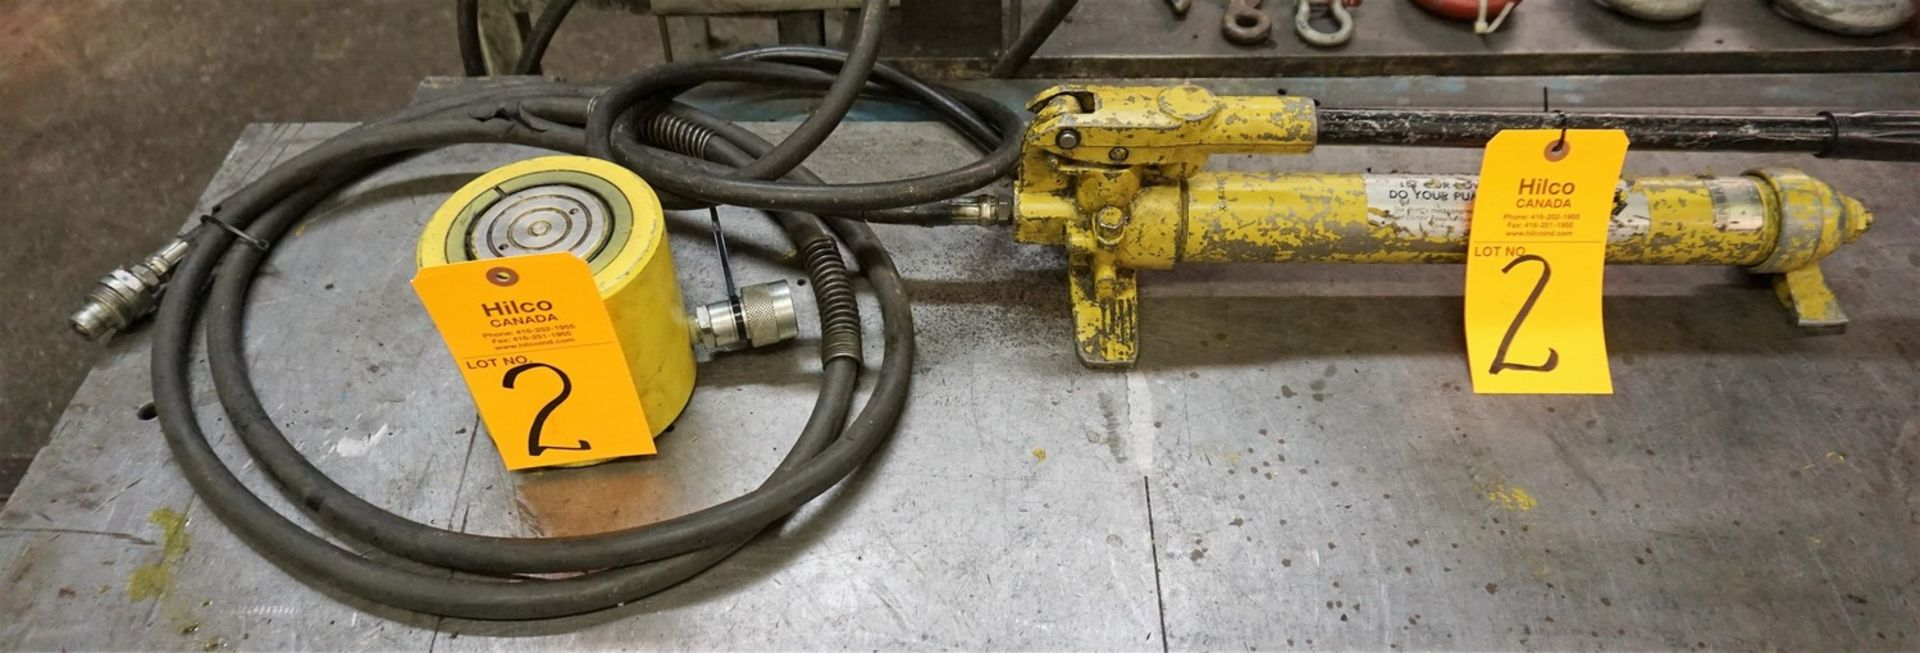 Lot 2 - Enerpac Hydraulic Hand Pump with Enerpac Ram Model RCS502